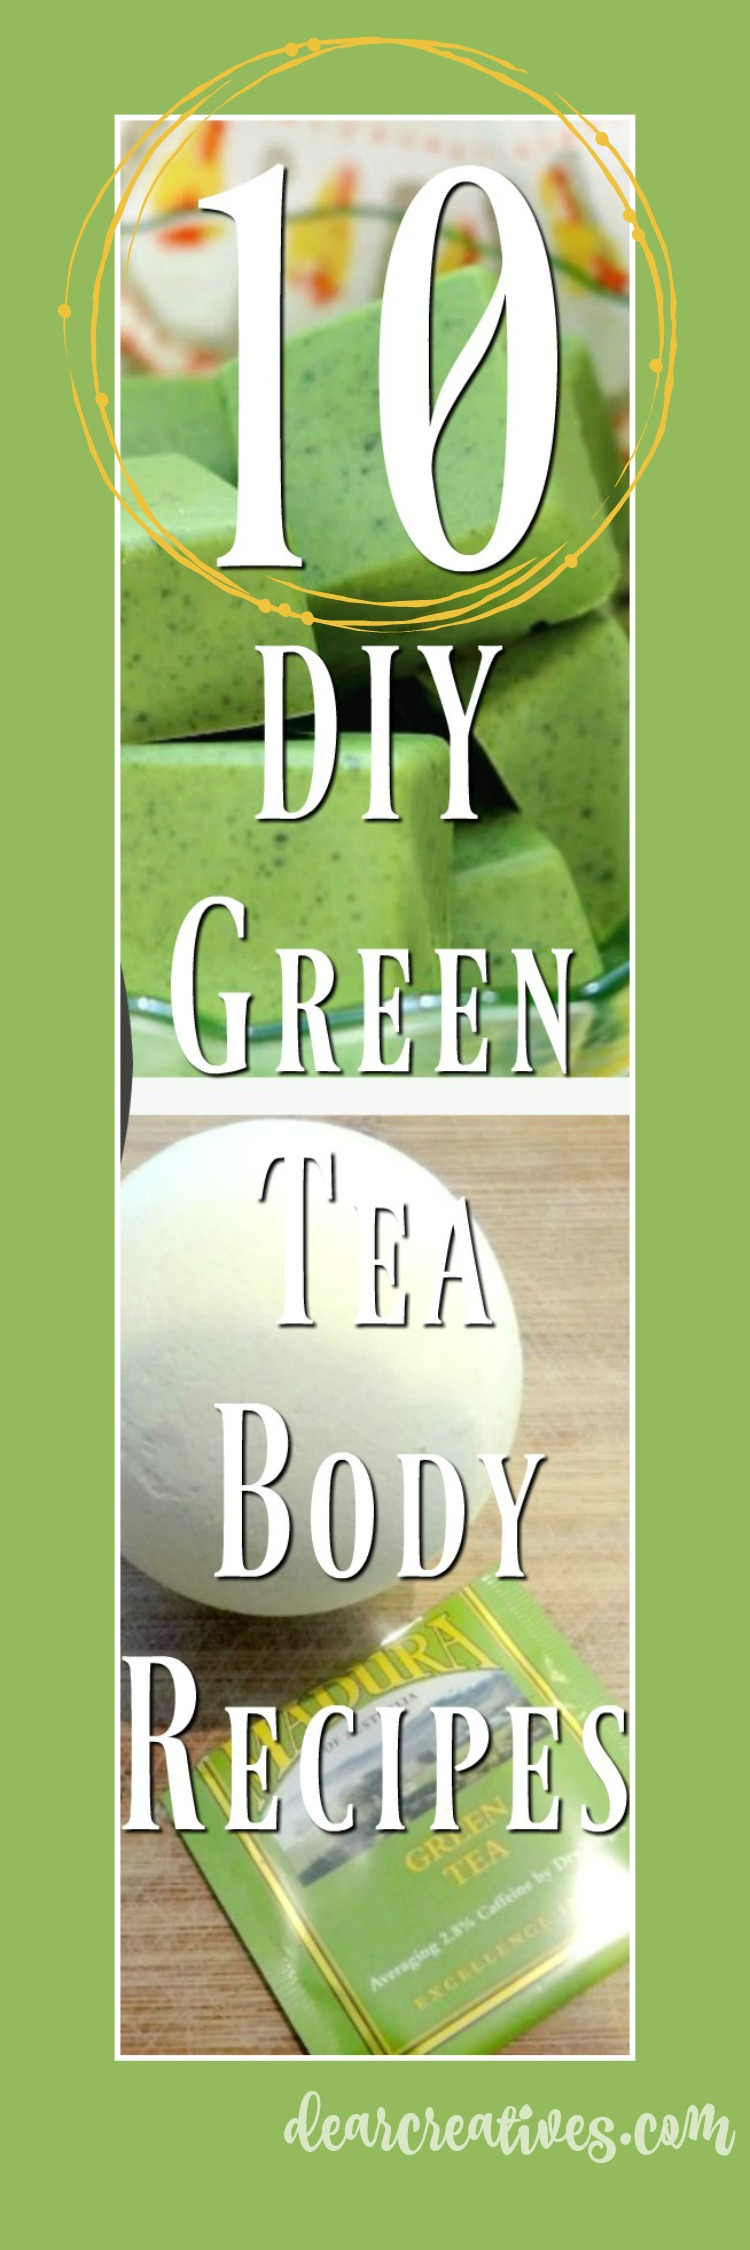 green-tea-body-recipes-diy-facials-soap-beauty-#greenbeauty #greenteabeautyrecipes #diybeautyrecipes DearCreatives.com